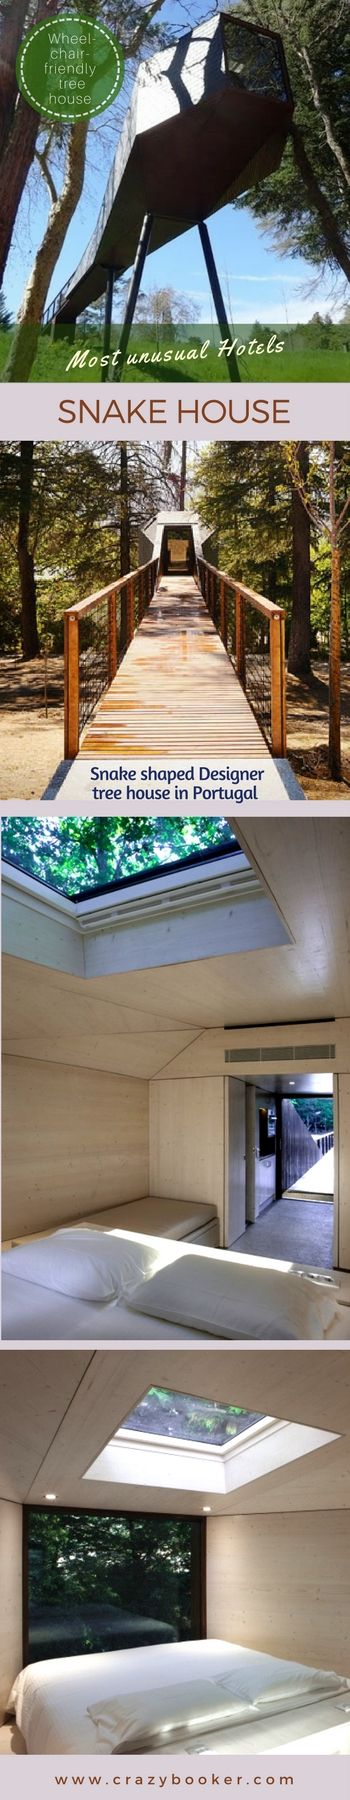 Unique Hotels Of The World |Tree Snake House   Modern Designed Treehouse In  Portugal | A 5 Star Hotel In The North Of Portugal Offers Two Unique Design  ... Amazing Ideas